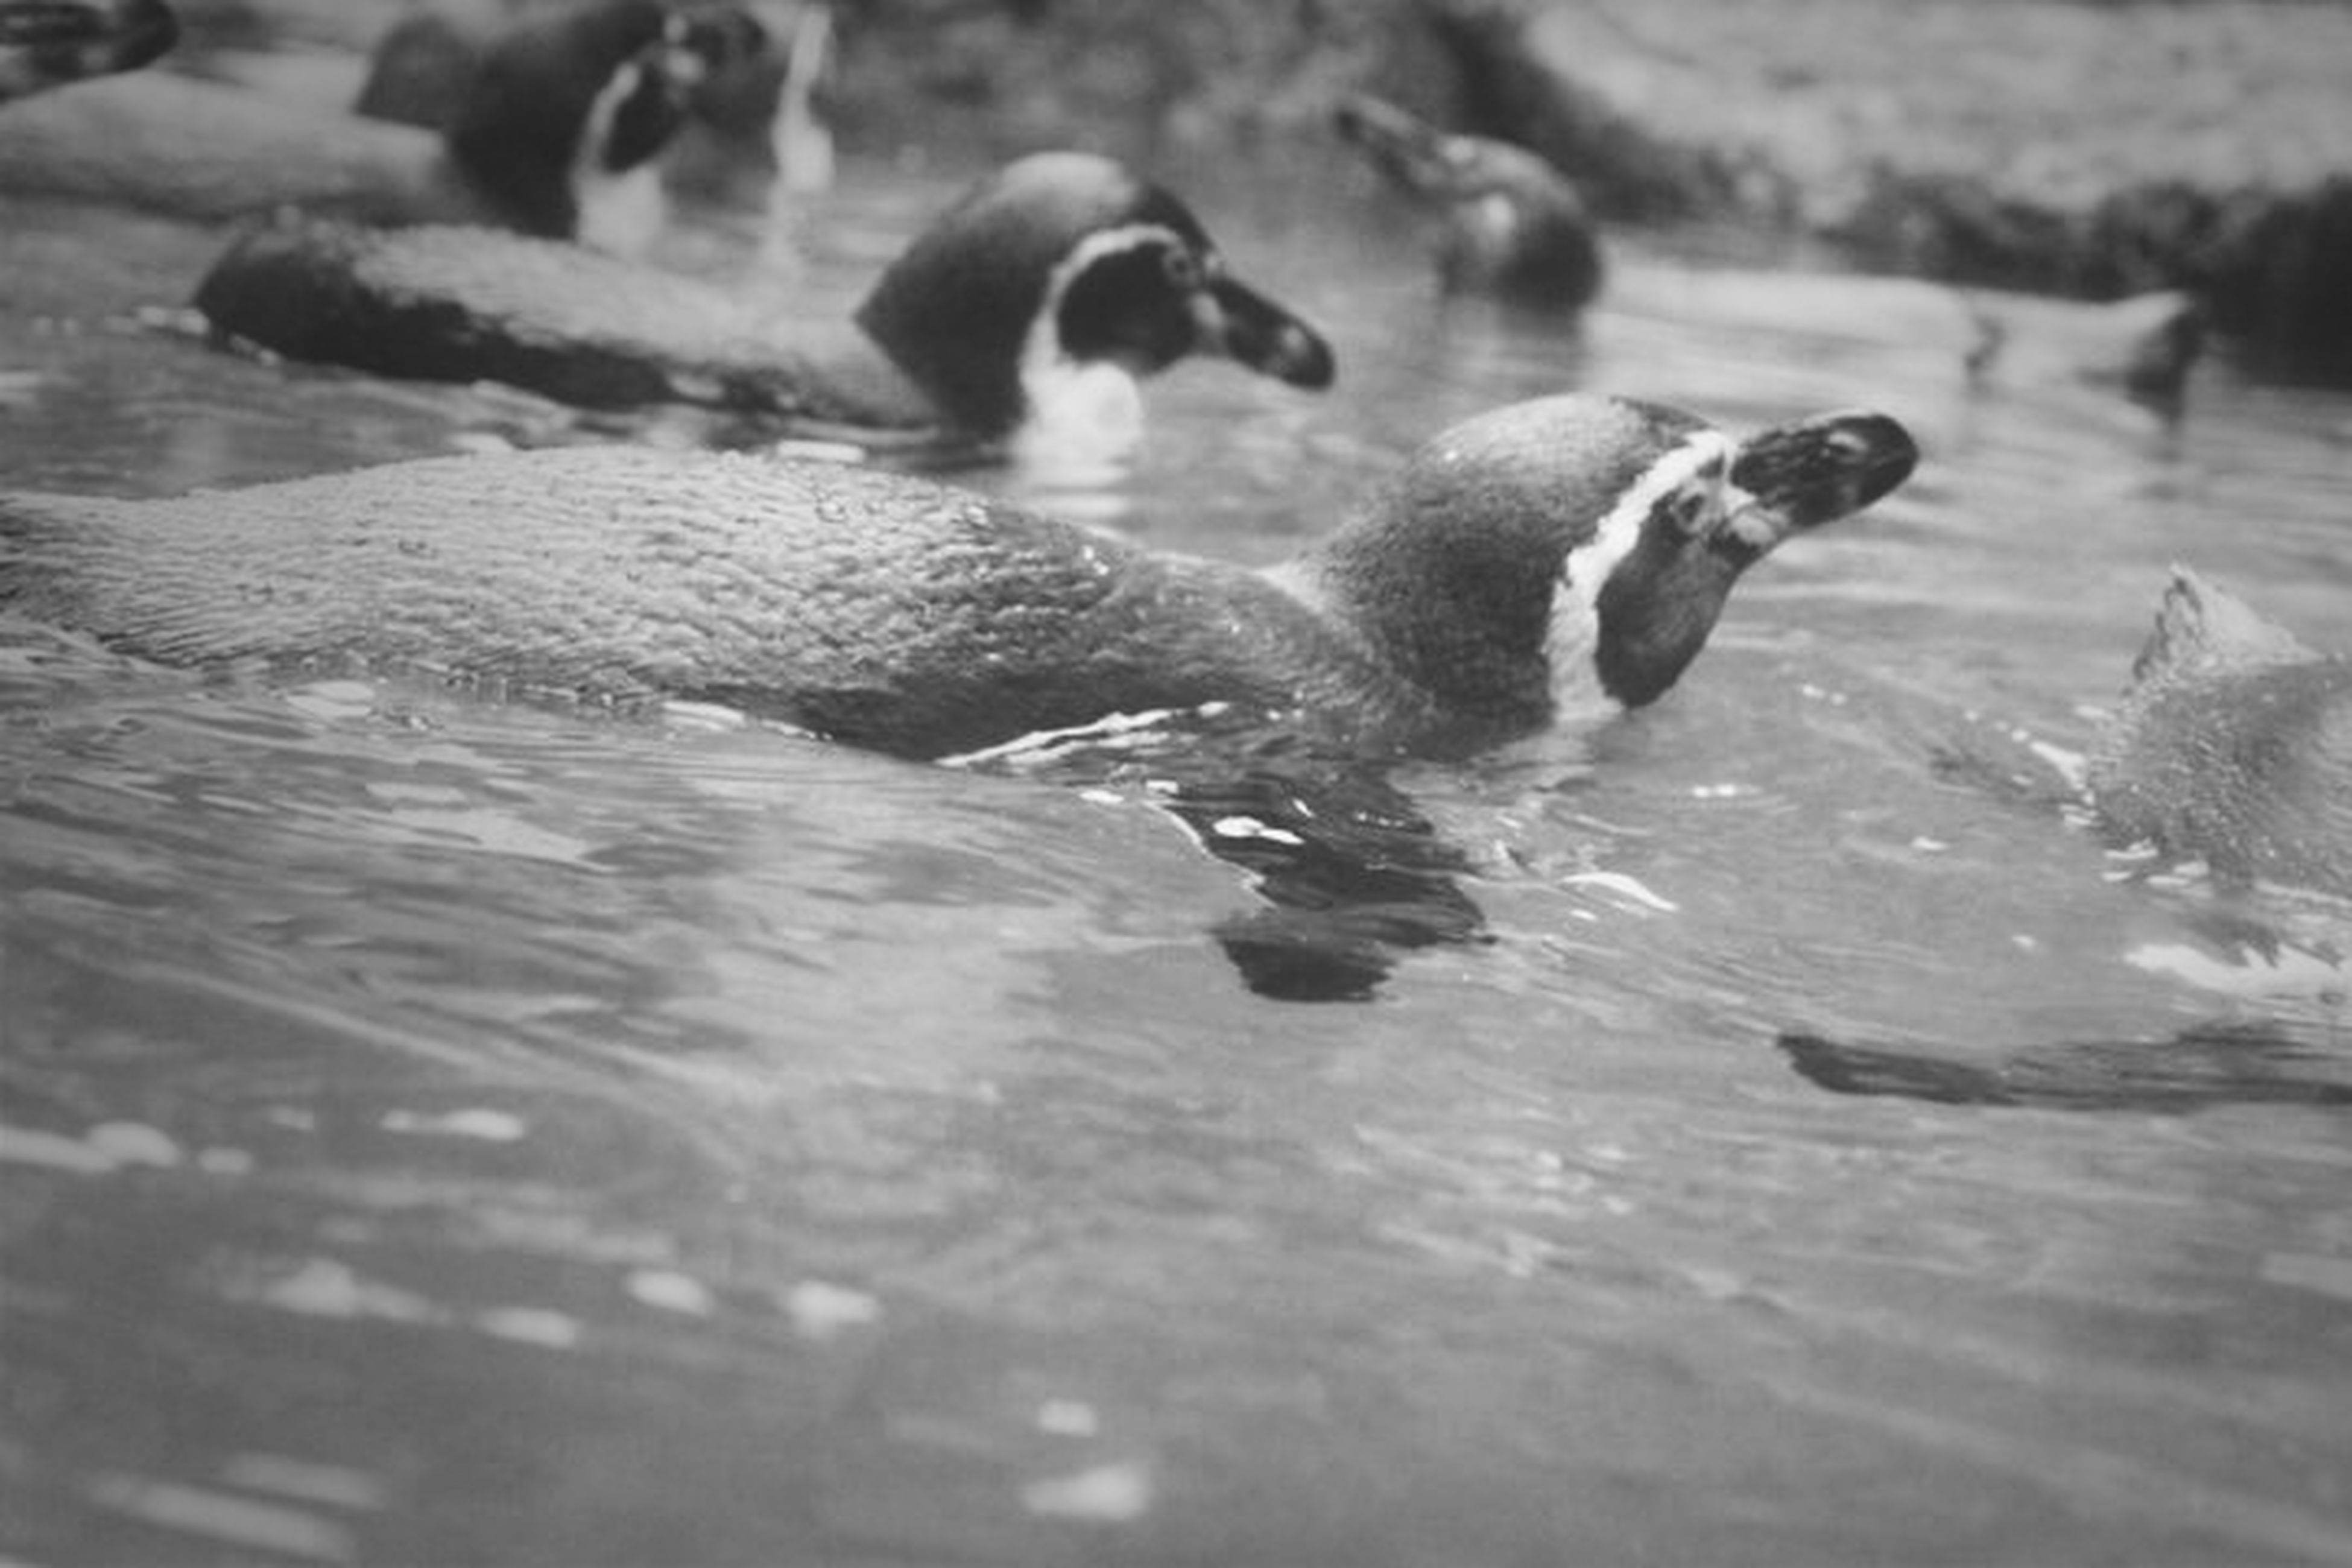 animal themes, water, animals in the wild, wildlife, one animal, bird, swimming, lake, nature, waterfront, high angle view, day, outdoors, selective focus, focus on foreground, river, two animals, reflection, no people, mammal